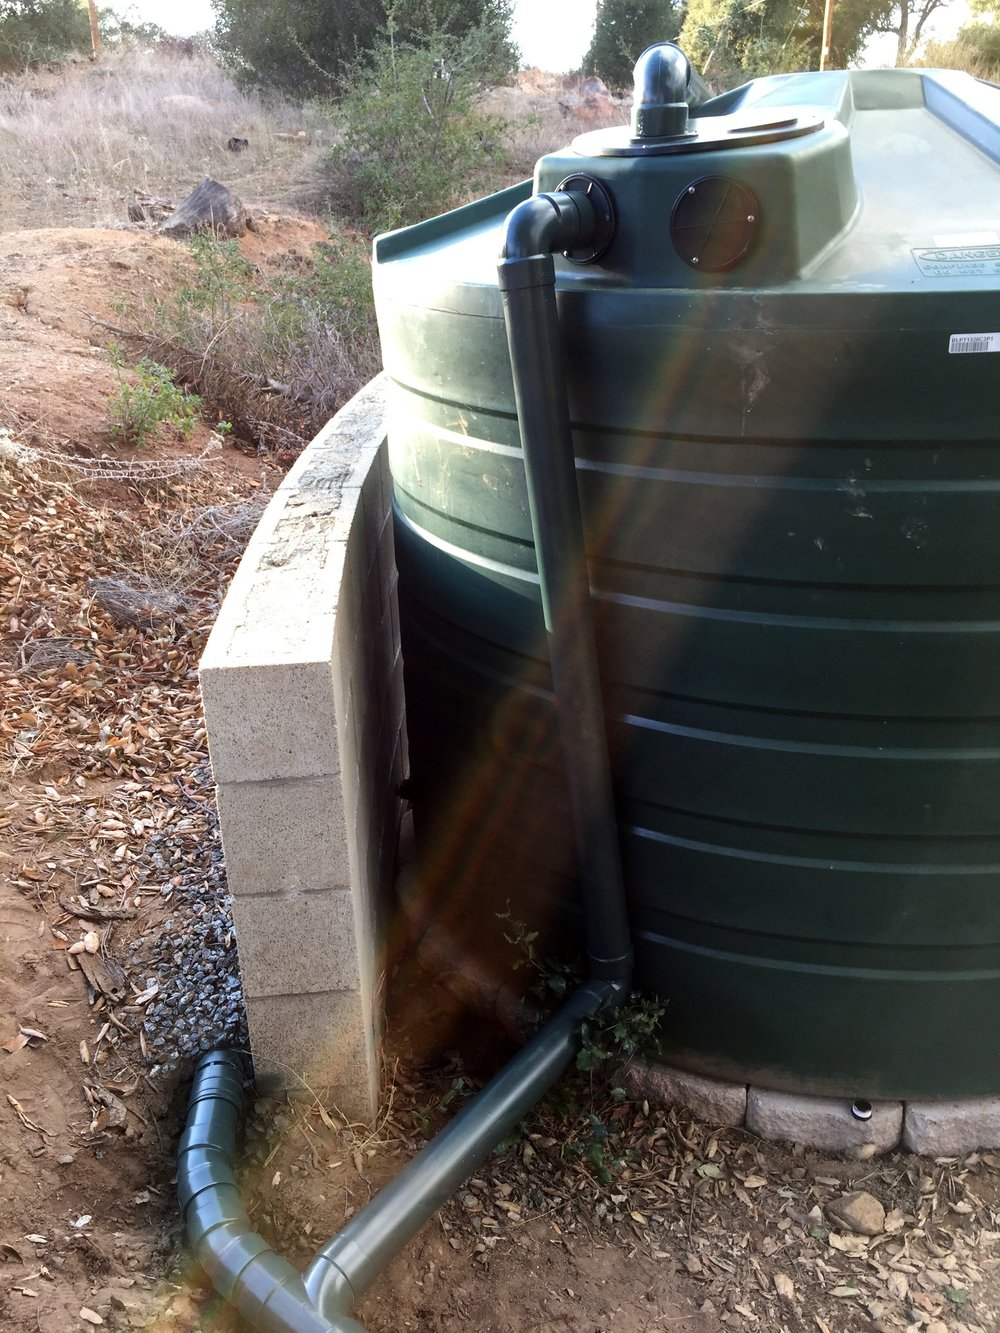 We combined the overflow from the rainwater tank with this wall drain and directed both to our raingarden